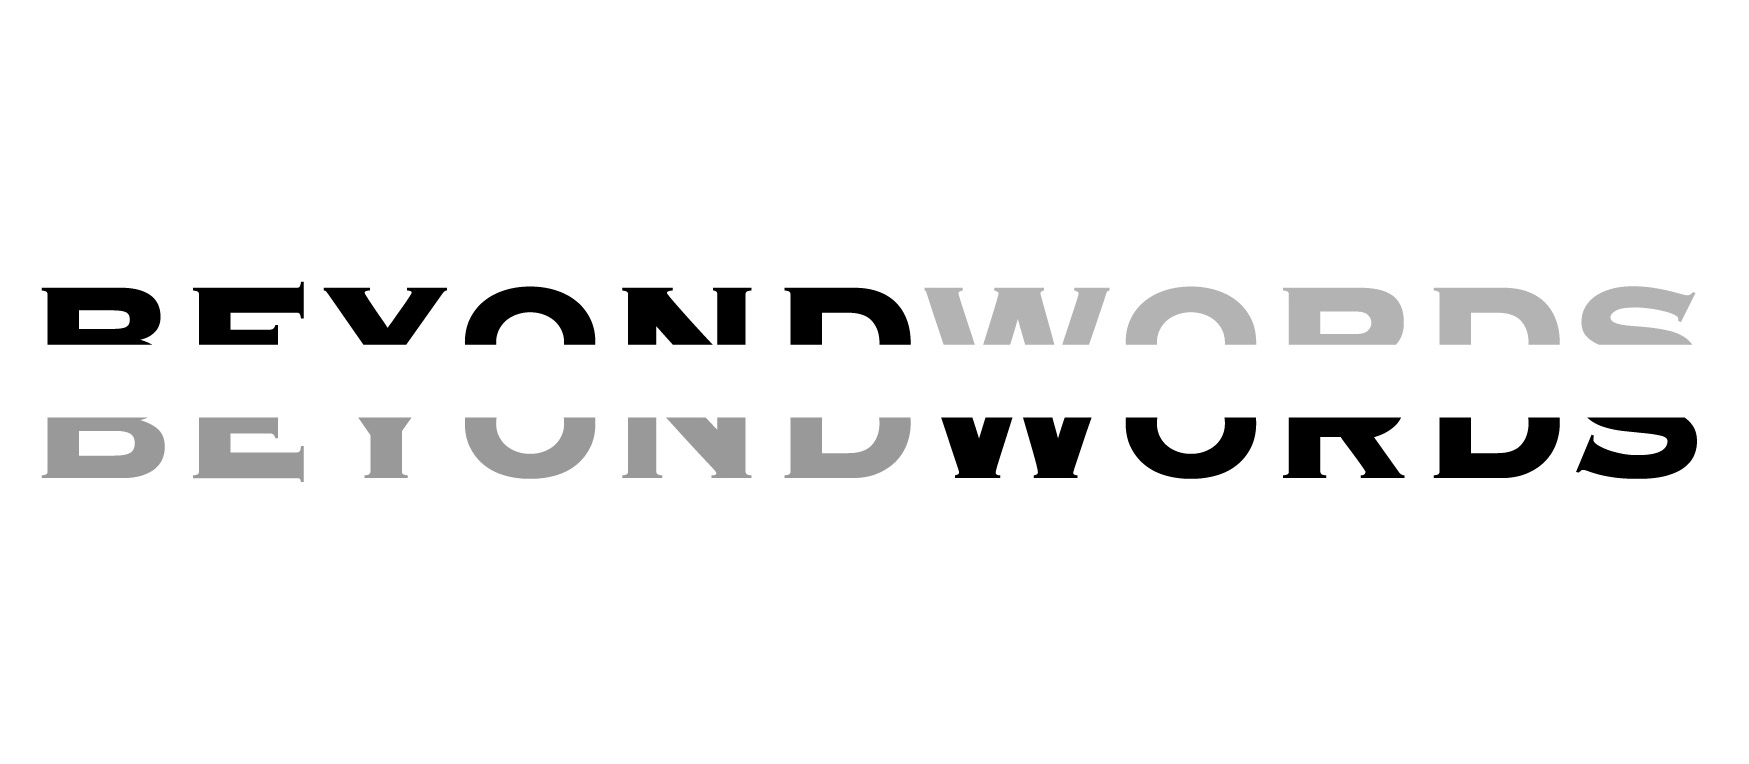 beyond words logo.jpg